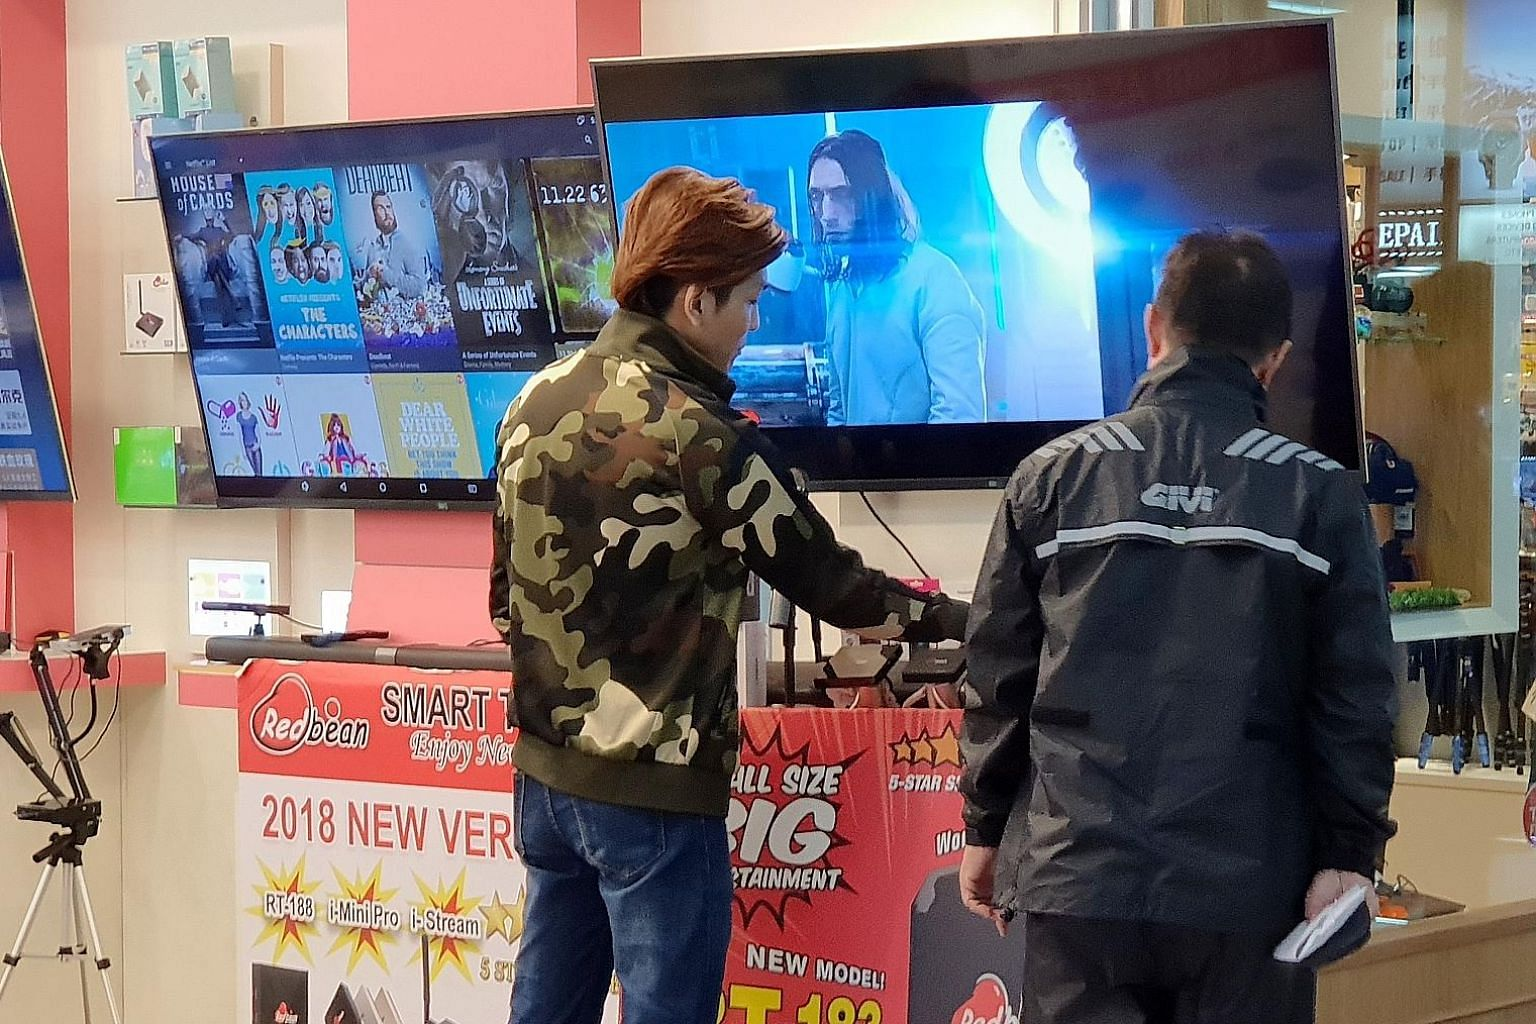 Streaming set-top boxes, which help consumers access pirated content, are openly promoted and sold at shops at Sim Lim Square. New laws to be tabled this year will ban the sale of such boxes.